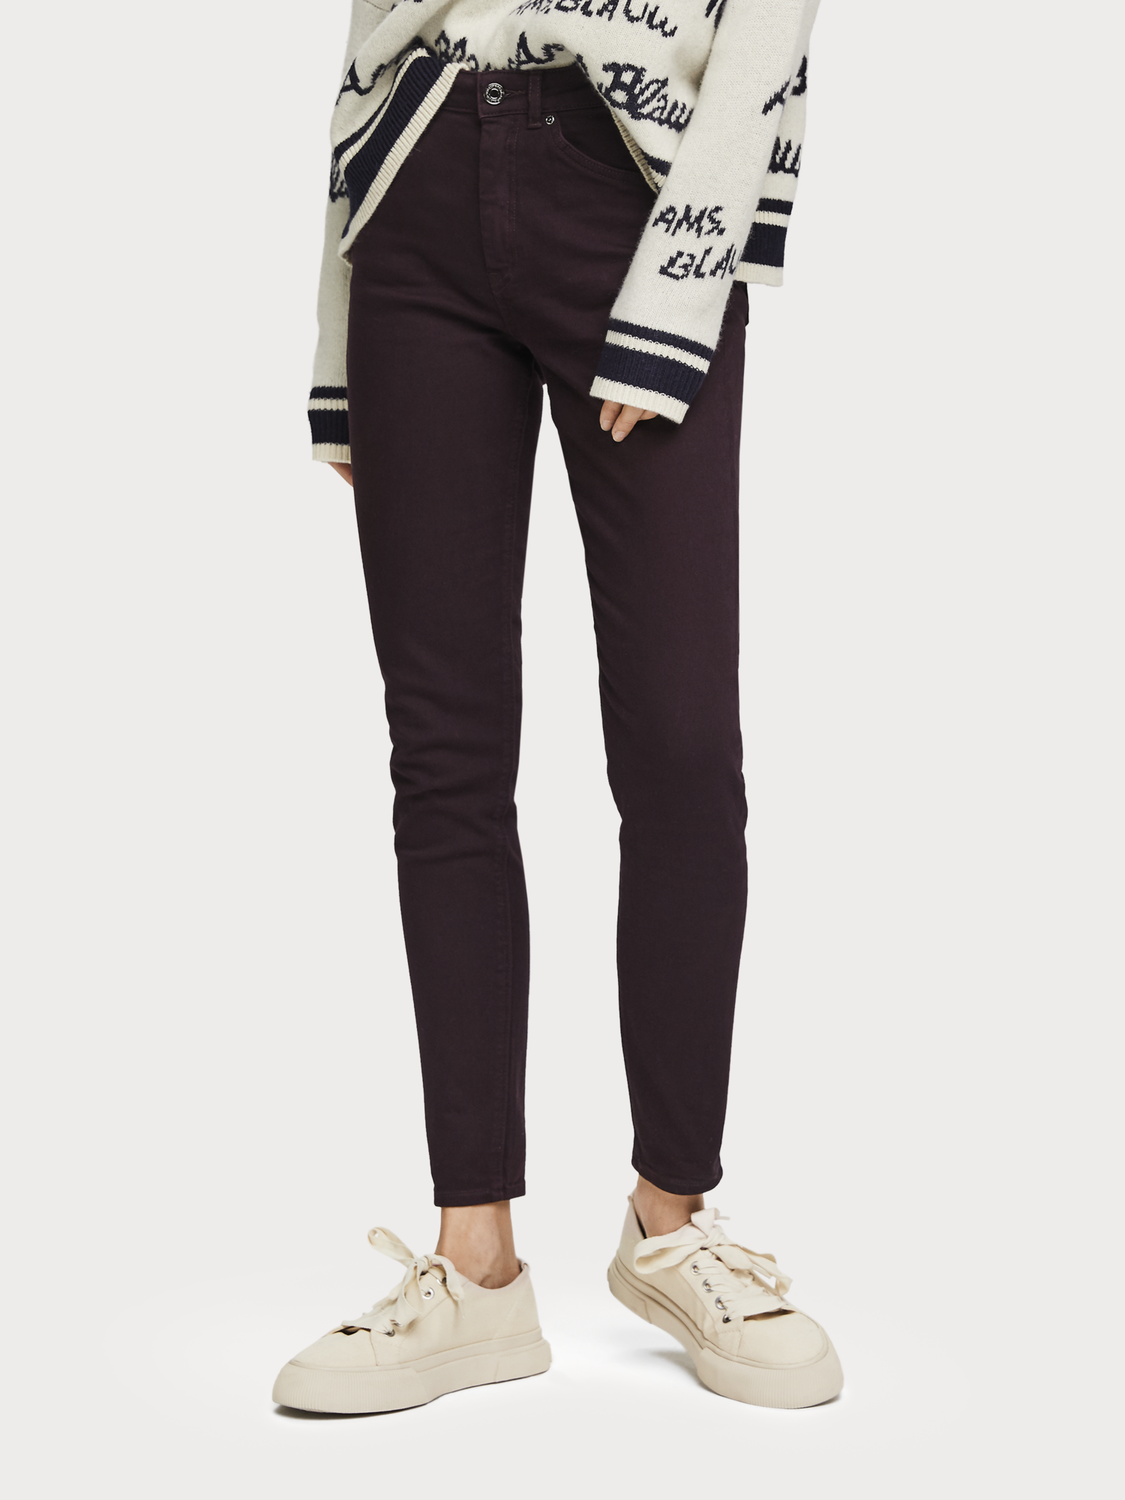 Damer Haut - Garment Dyed Jeans | High rise skinny fit